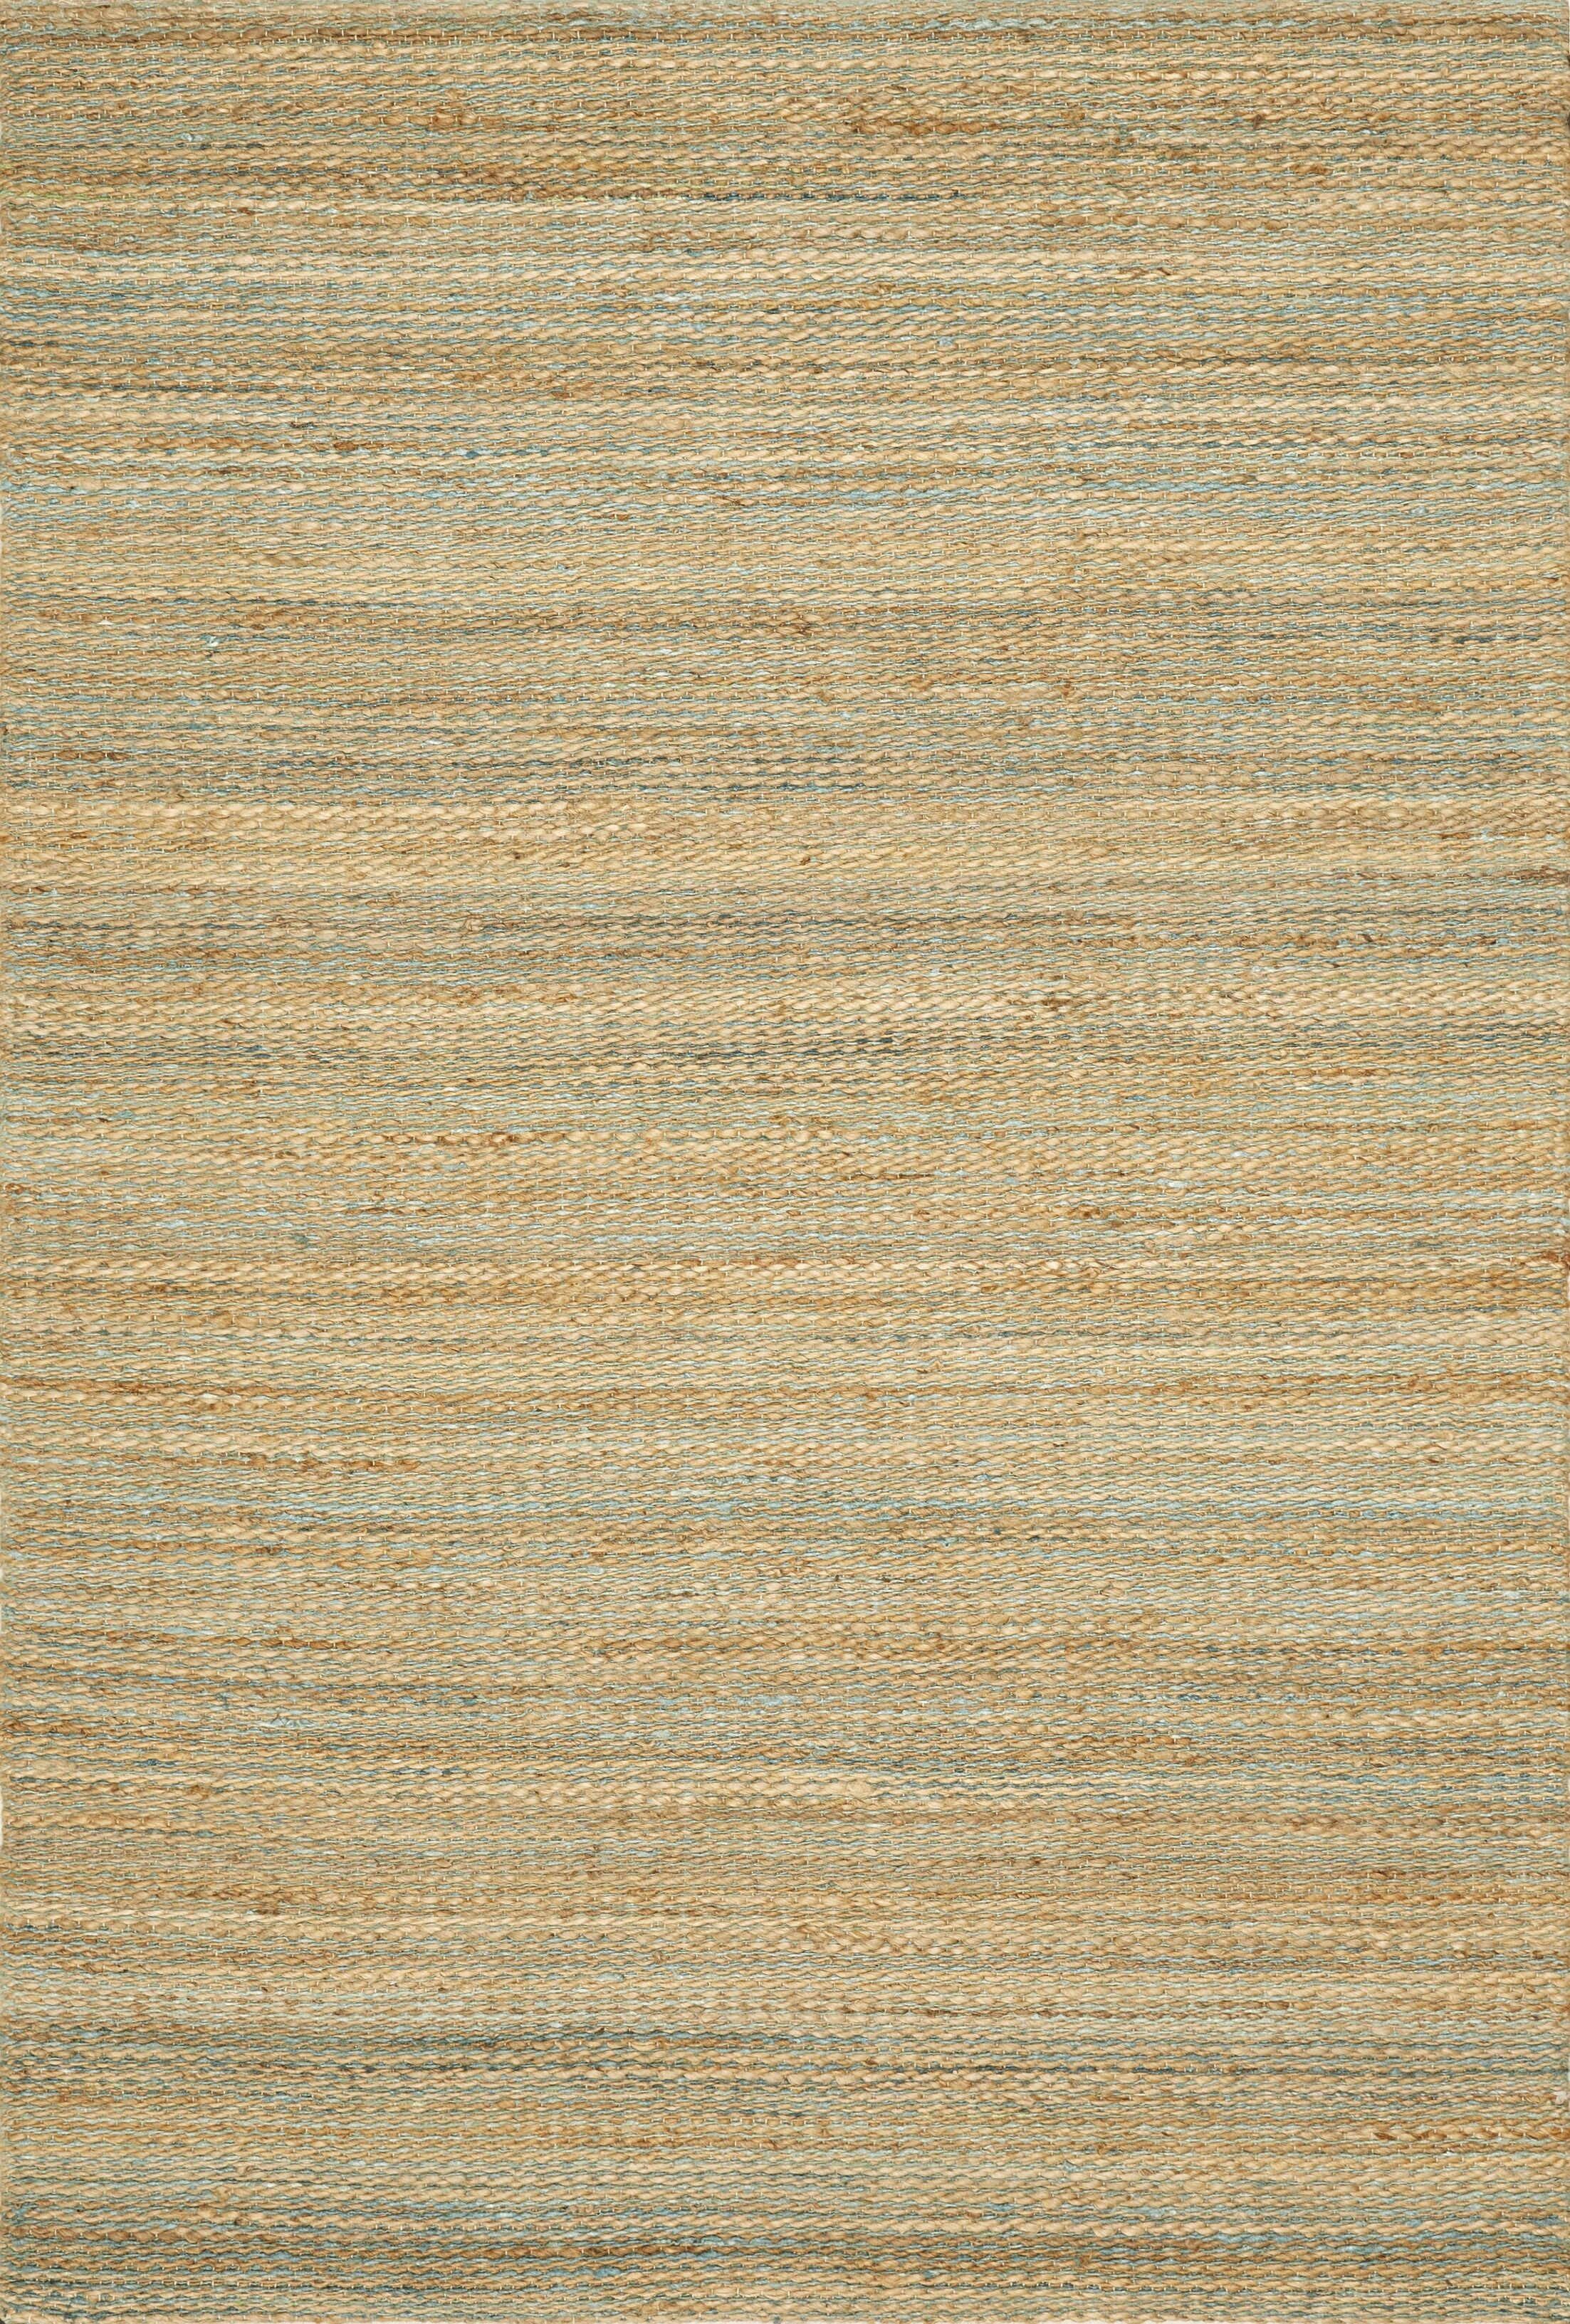 Dulce Teal Area Rug Rug Size: Rectangle 3'6